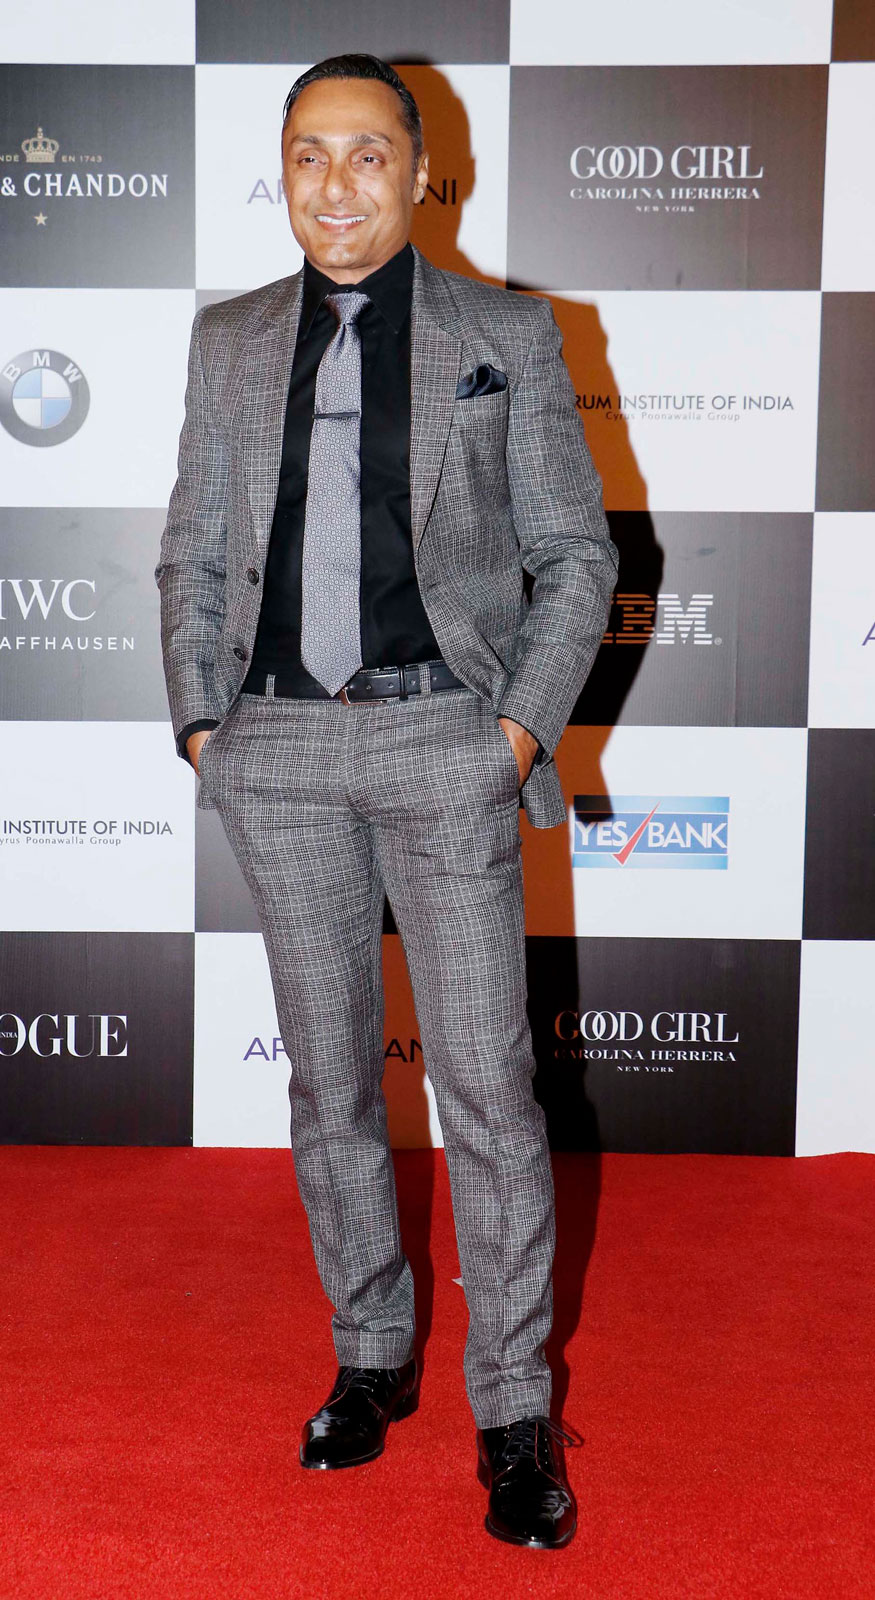 Rahul Bose attends the 'Vogue Women of the Year Awards 2017' at Grand Hyatt Hotel On Sunday, September 24, 2017 in Mumbai. (Image: Yogen Shah)